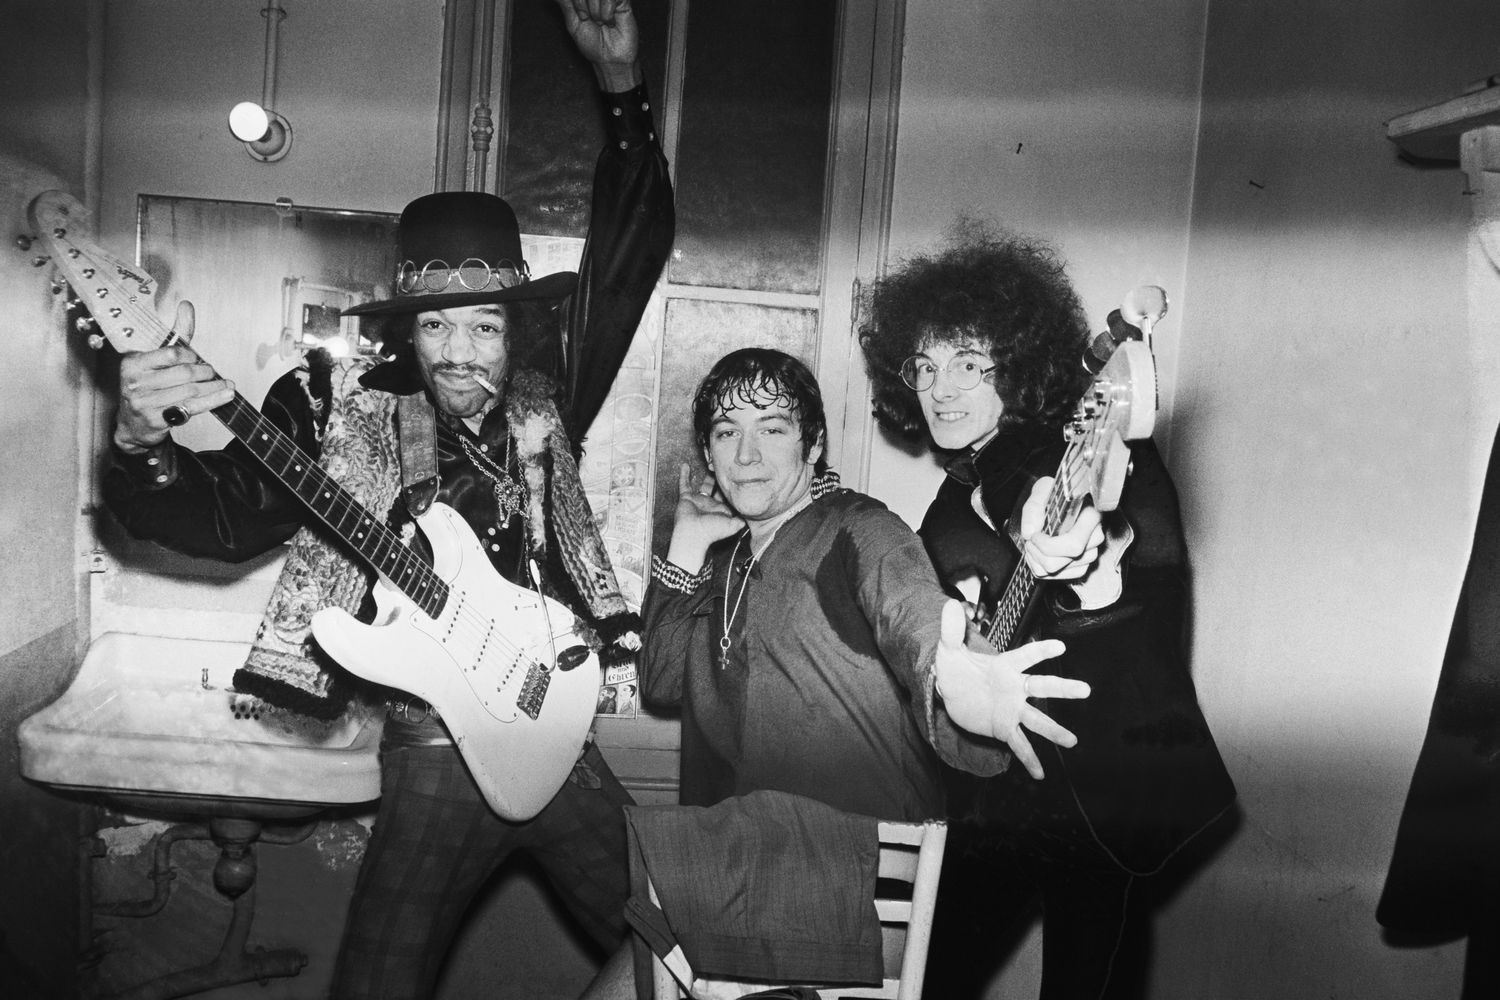 Jimi Hendrix, Eric Burdon e Noel Redding no camarim do Olympia em Paris em 1968.